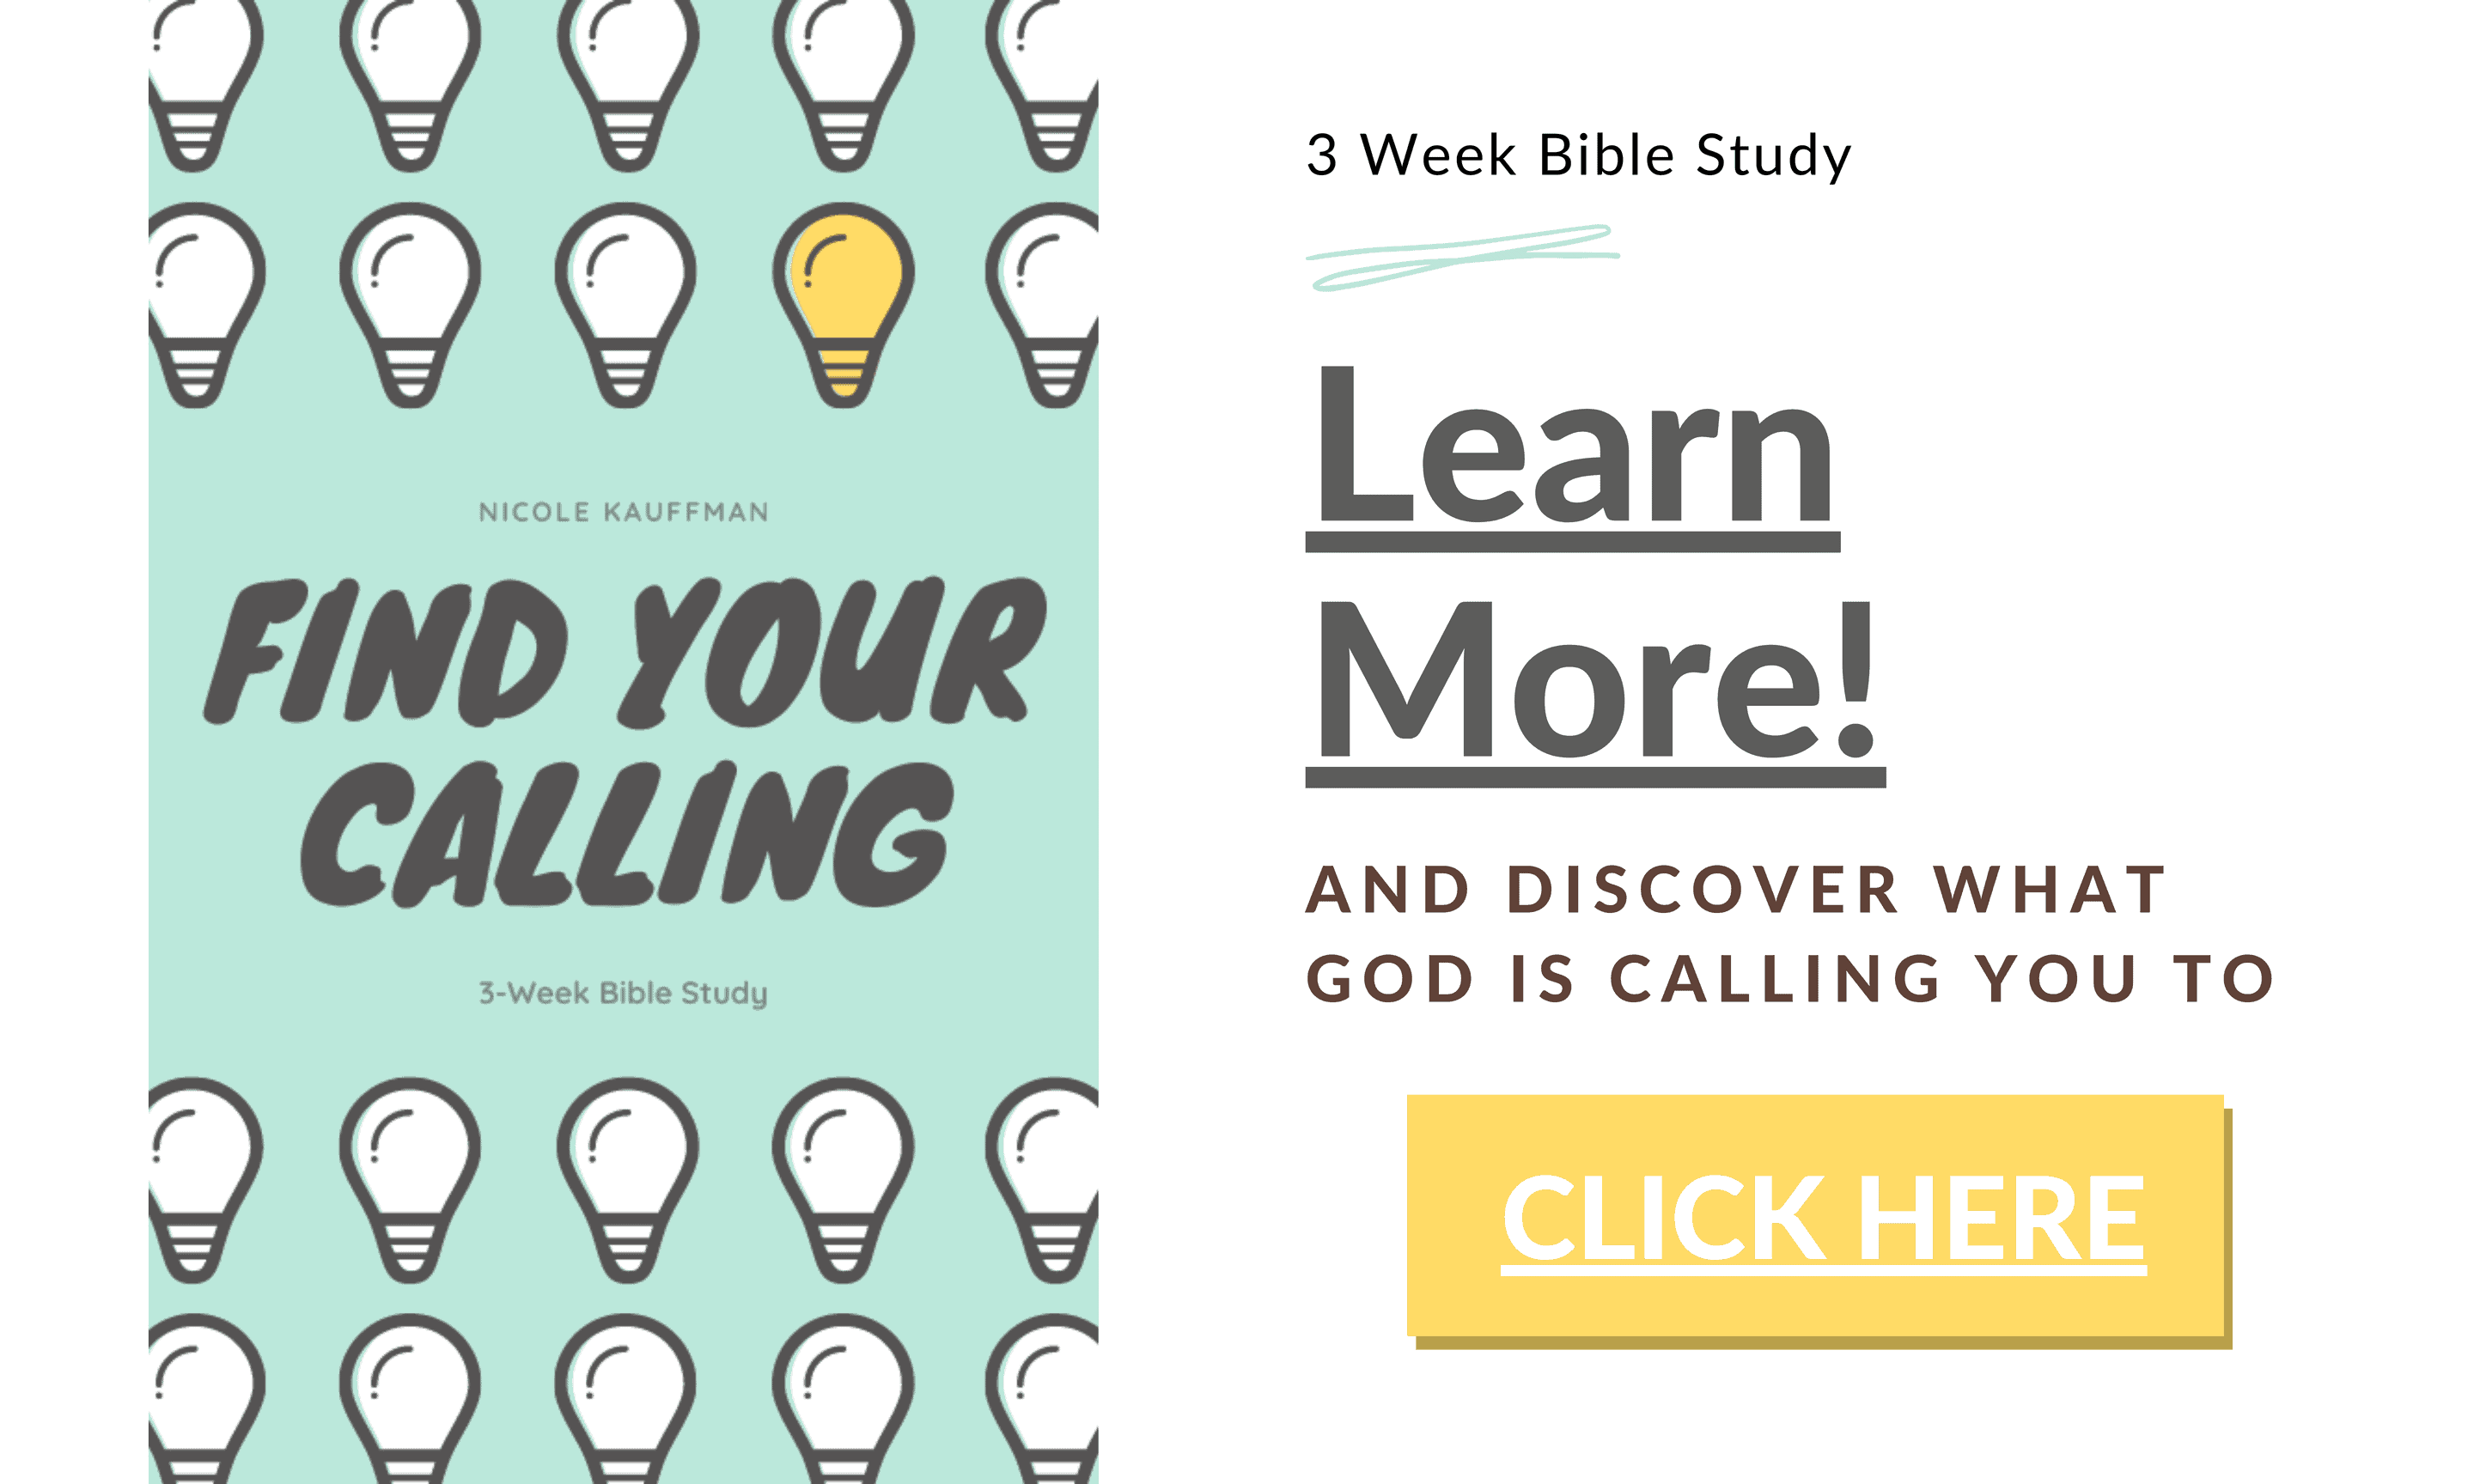 Find Your Calling Study Available